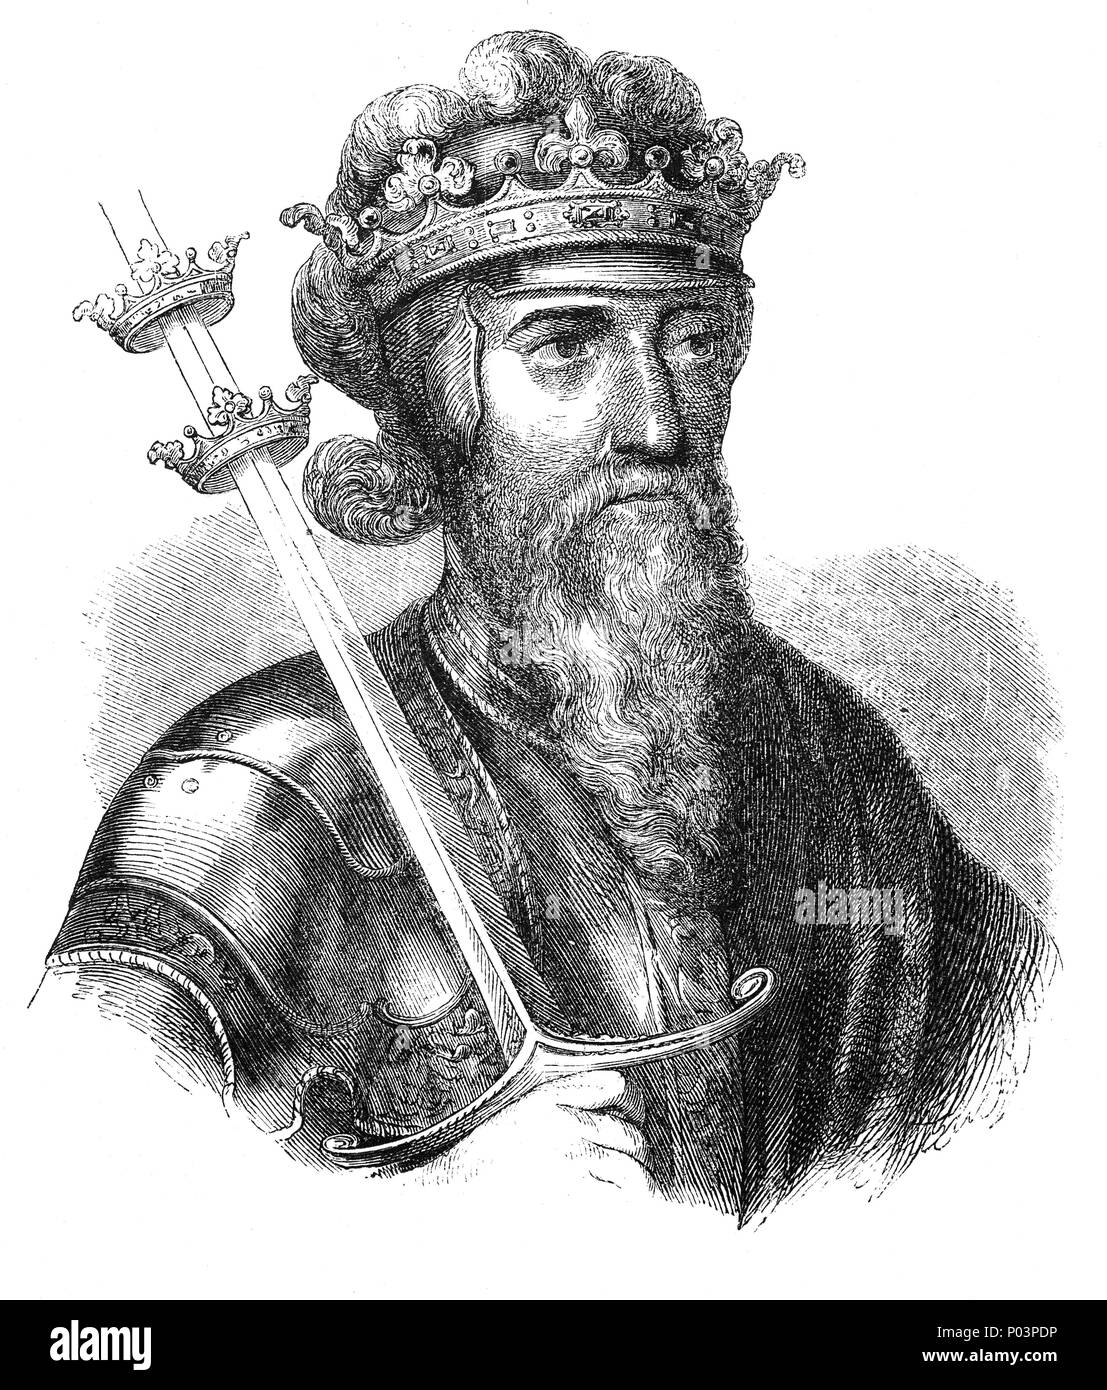 A portrait of Edward III (1312–1377), King of England and Lord of Ireland from January 1327 until his death; he is noted for his military success and for restoring royal authority after the disastrous and unorthodox reign of his father, Edward II. Edward III transformed the Kingdom of England into one of the most formidable military powers in Europe. His long reign of 50 years was the second longest in medieval England and saw vital developments in legislation and government—in particular the evolution of the English parliament—as well as the ravages of the Black Death. - Stock Image